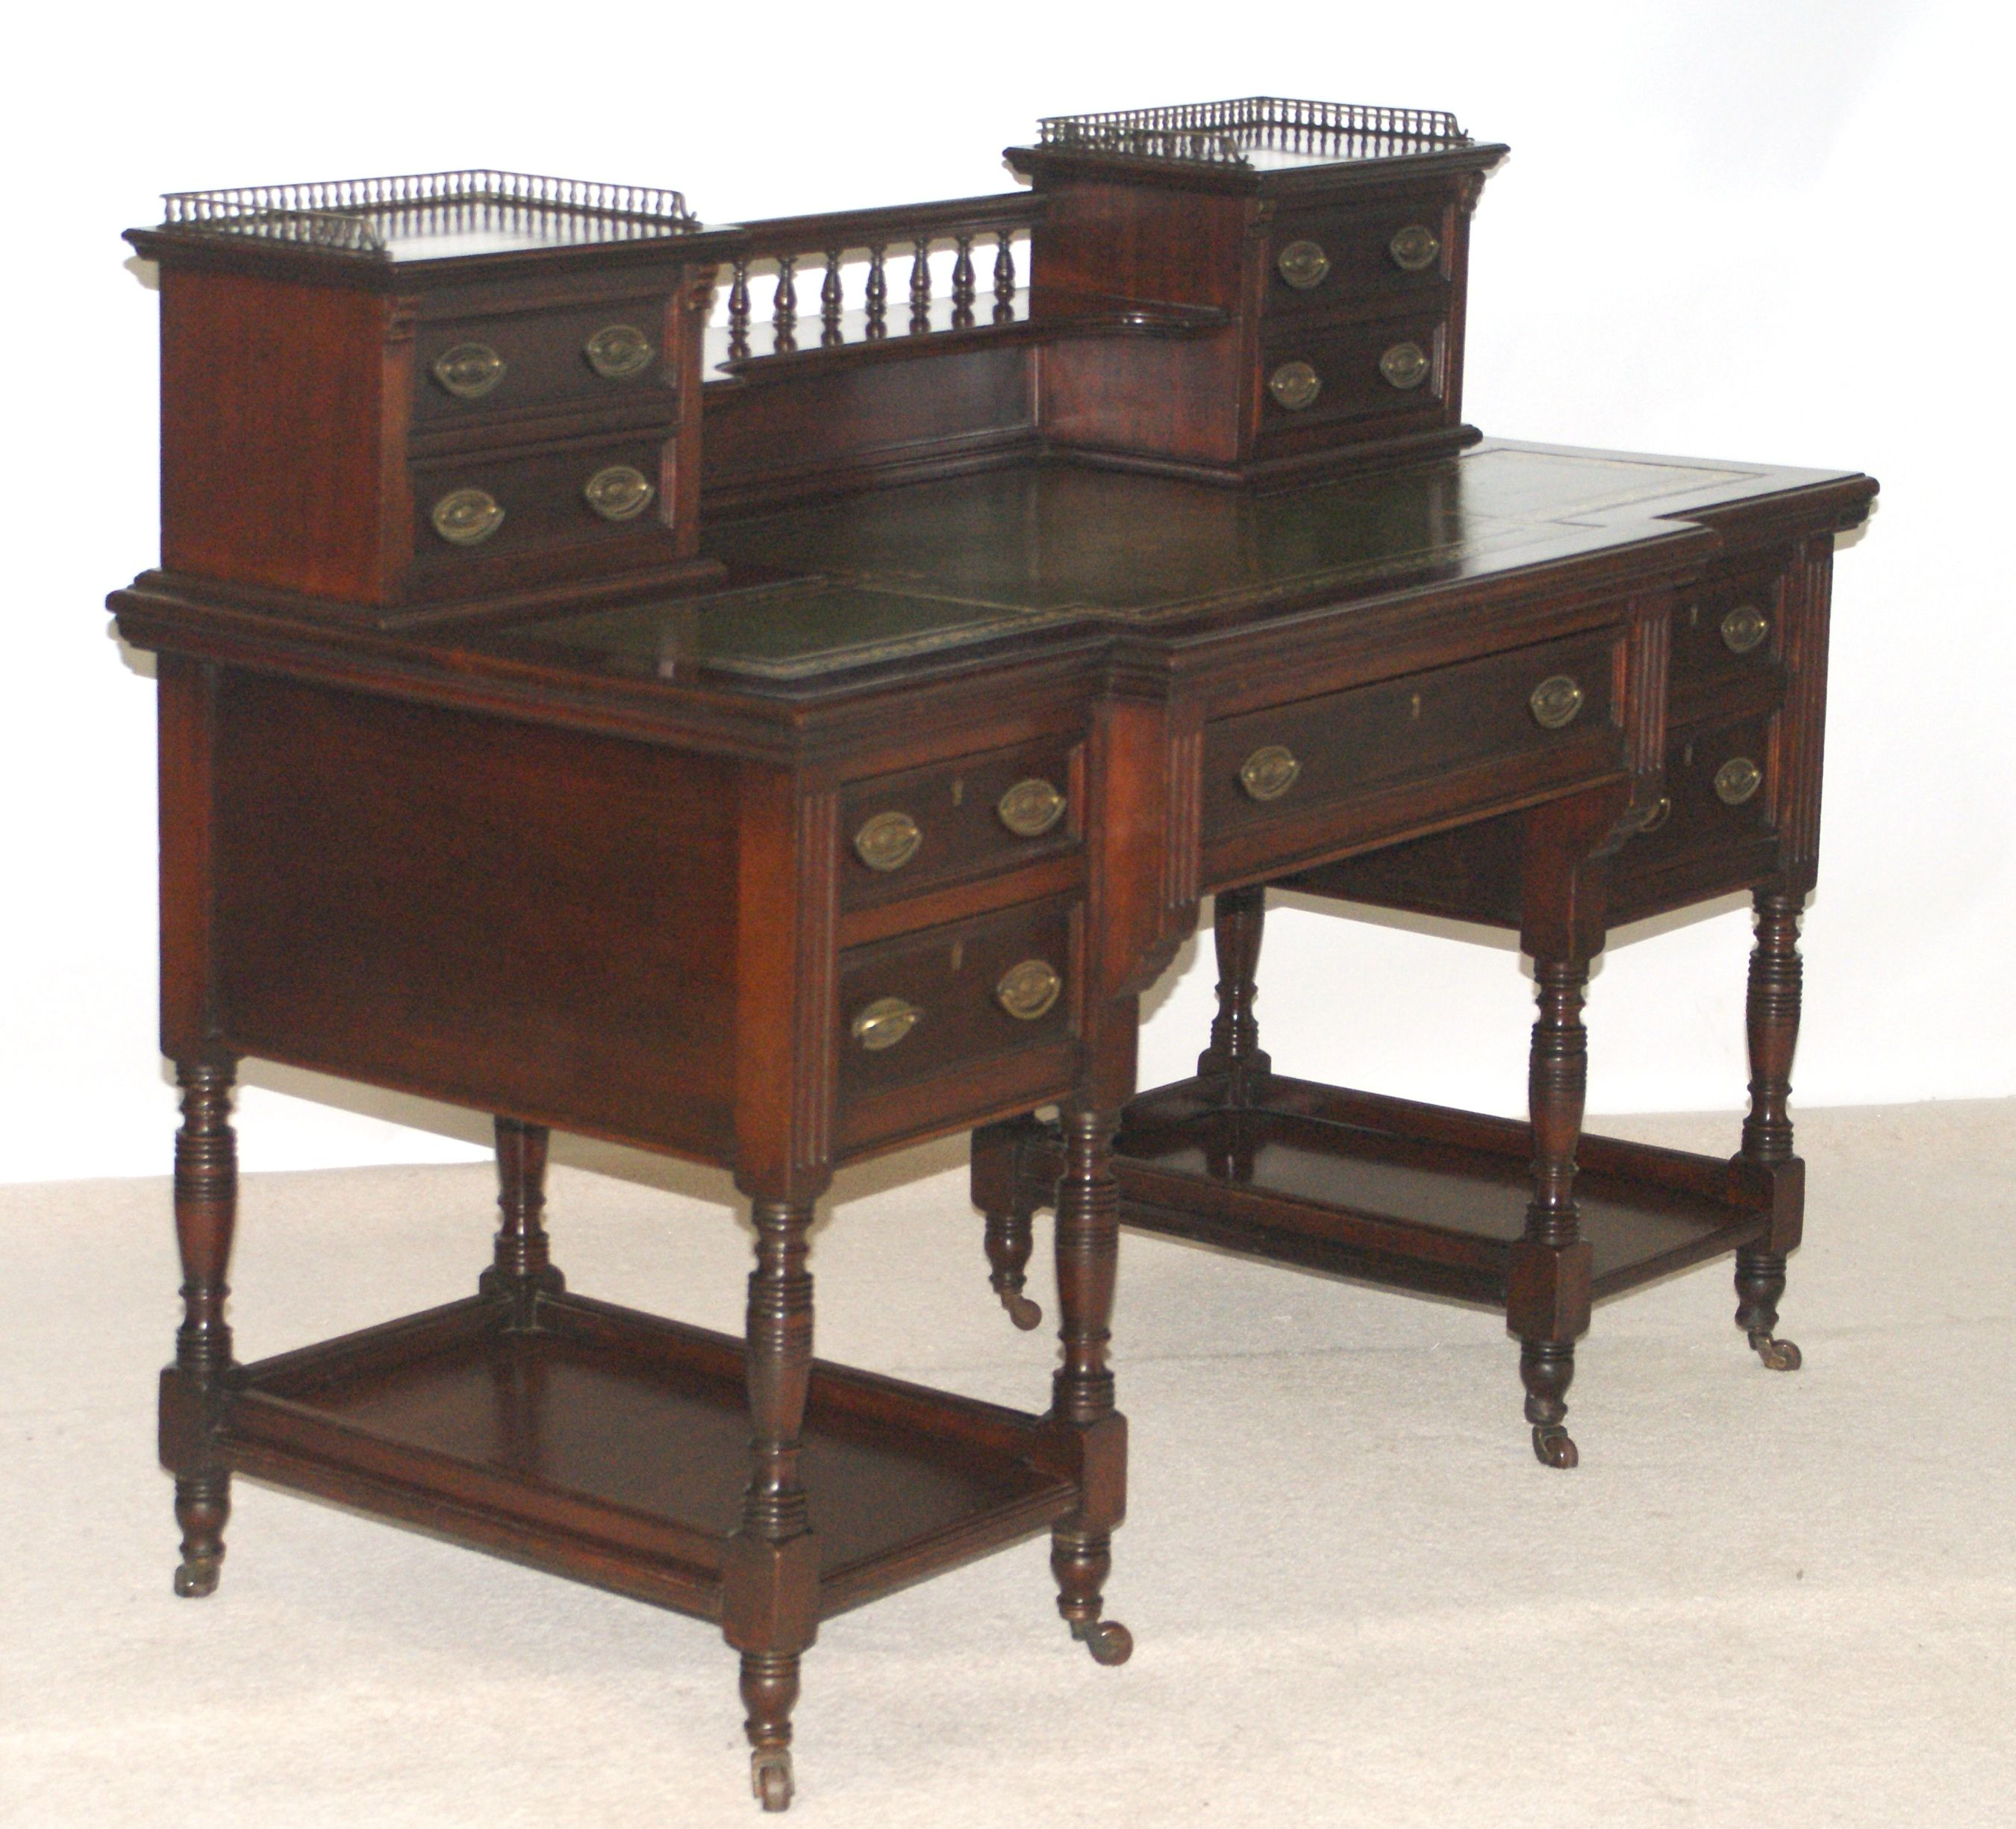 Late Victorian writing desk by Maple and Co